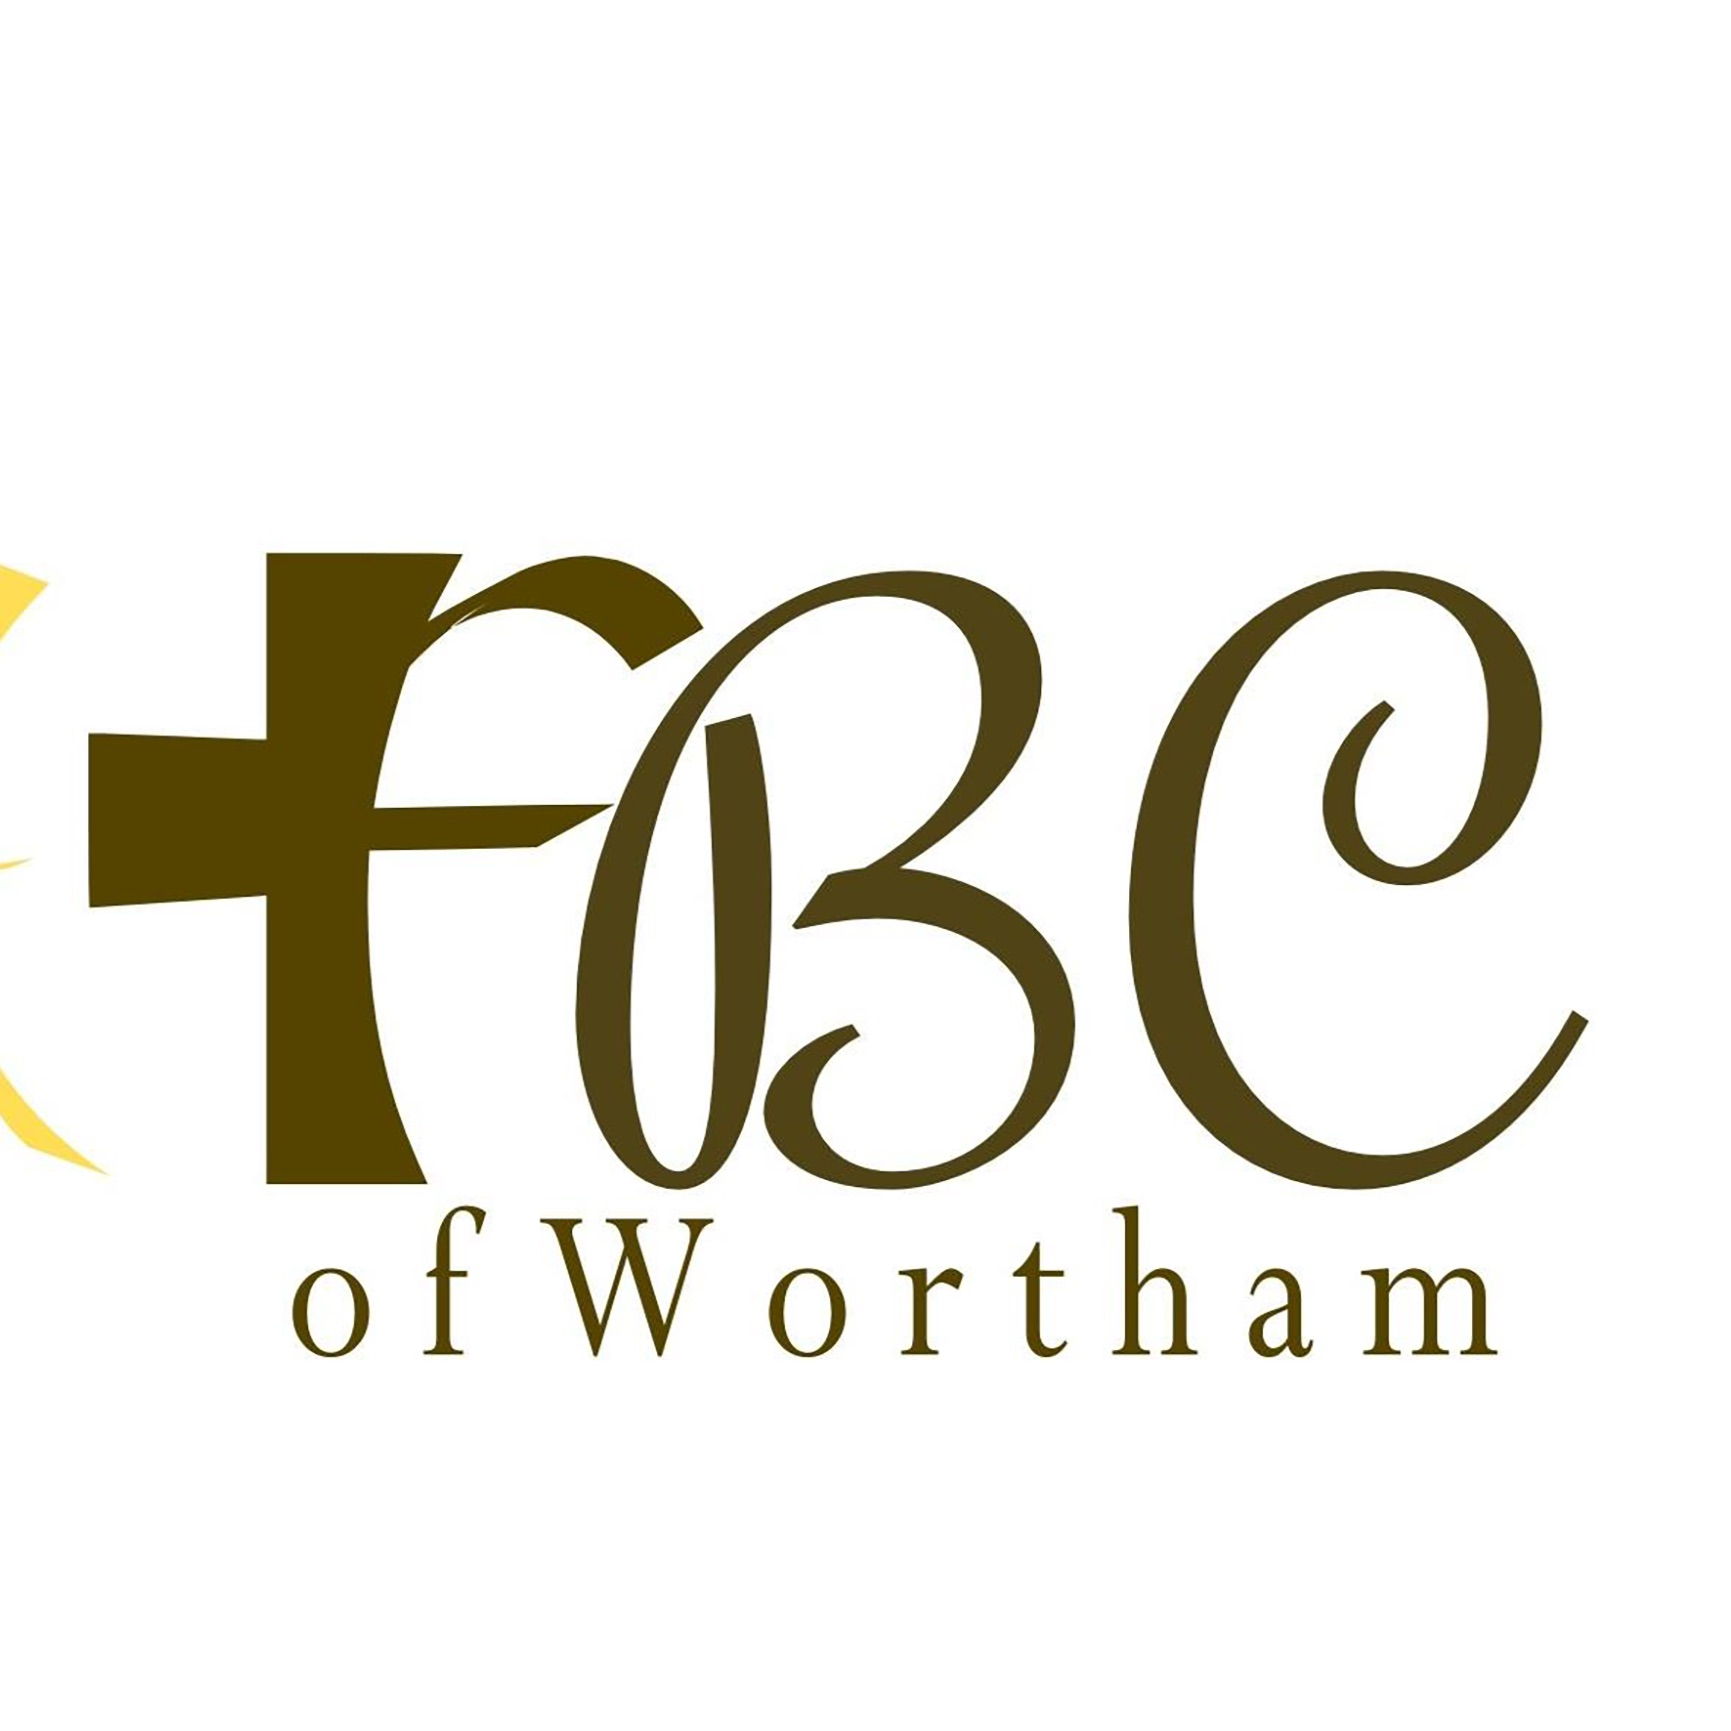 FBC Wortham Services